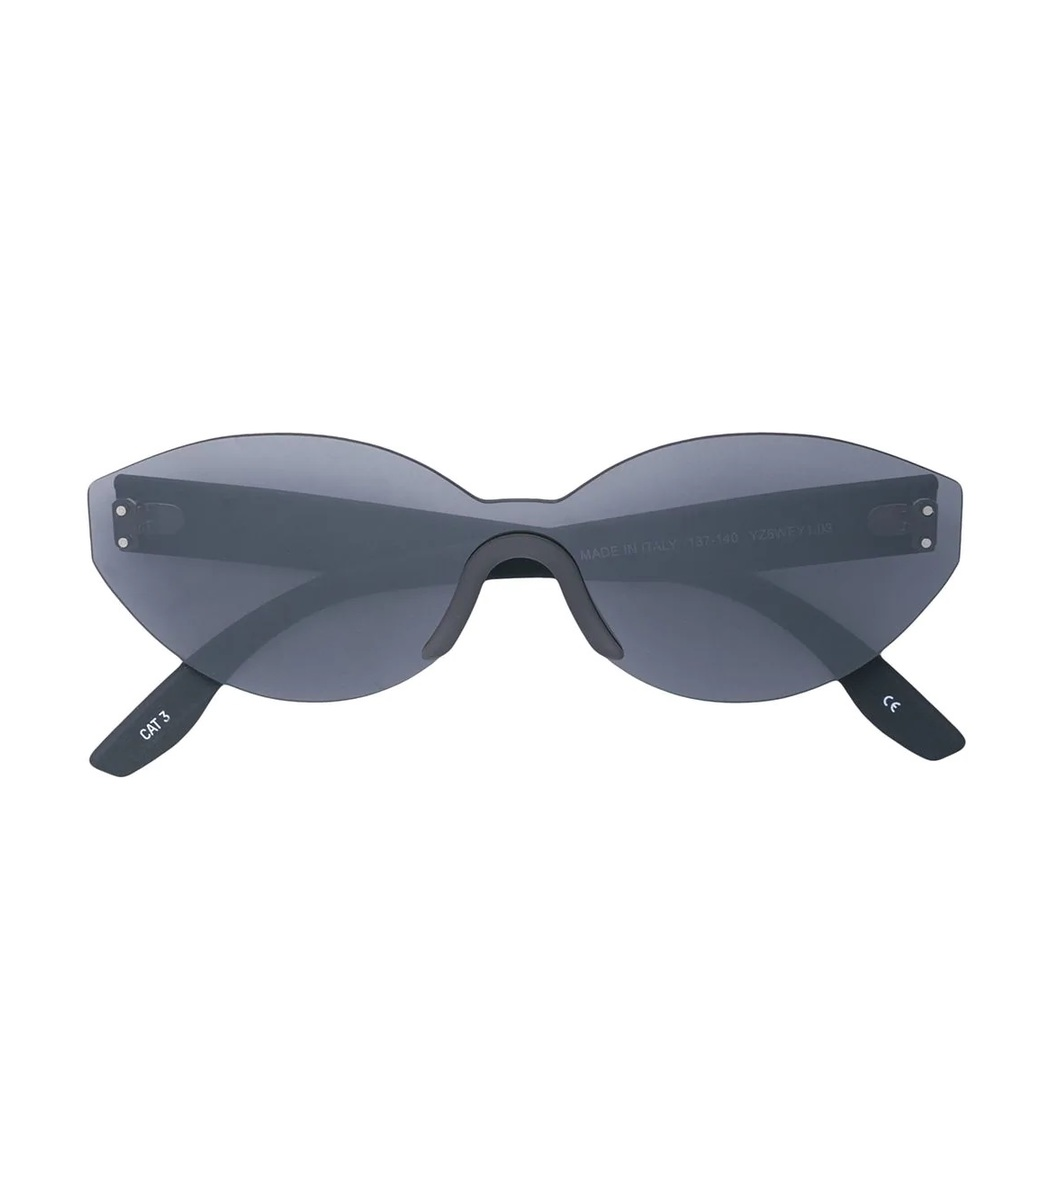 Yeezy Grey Oval Sunglasses